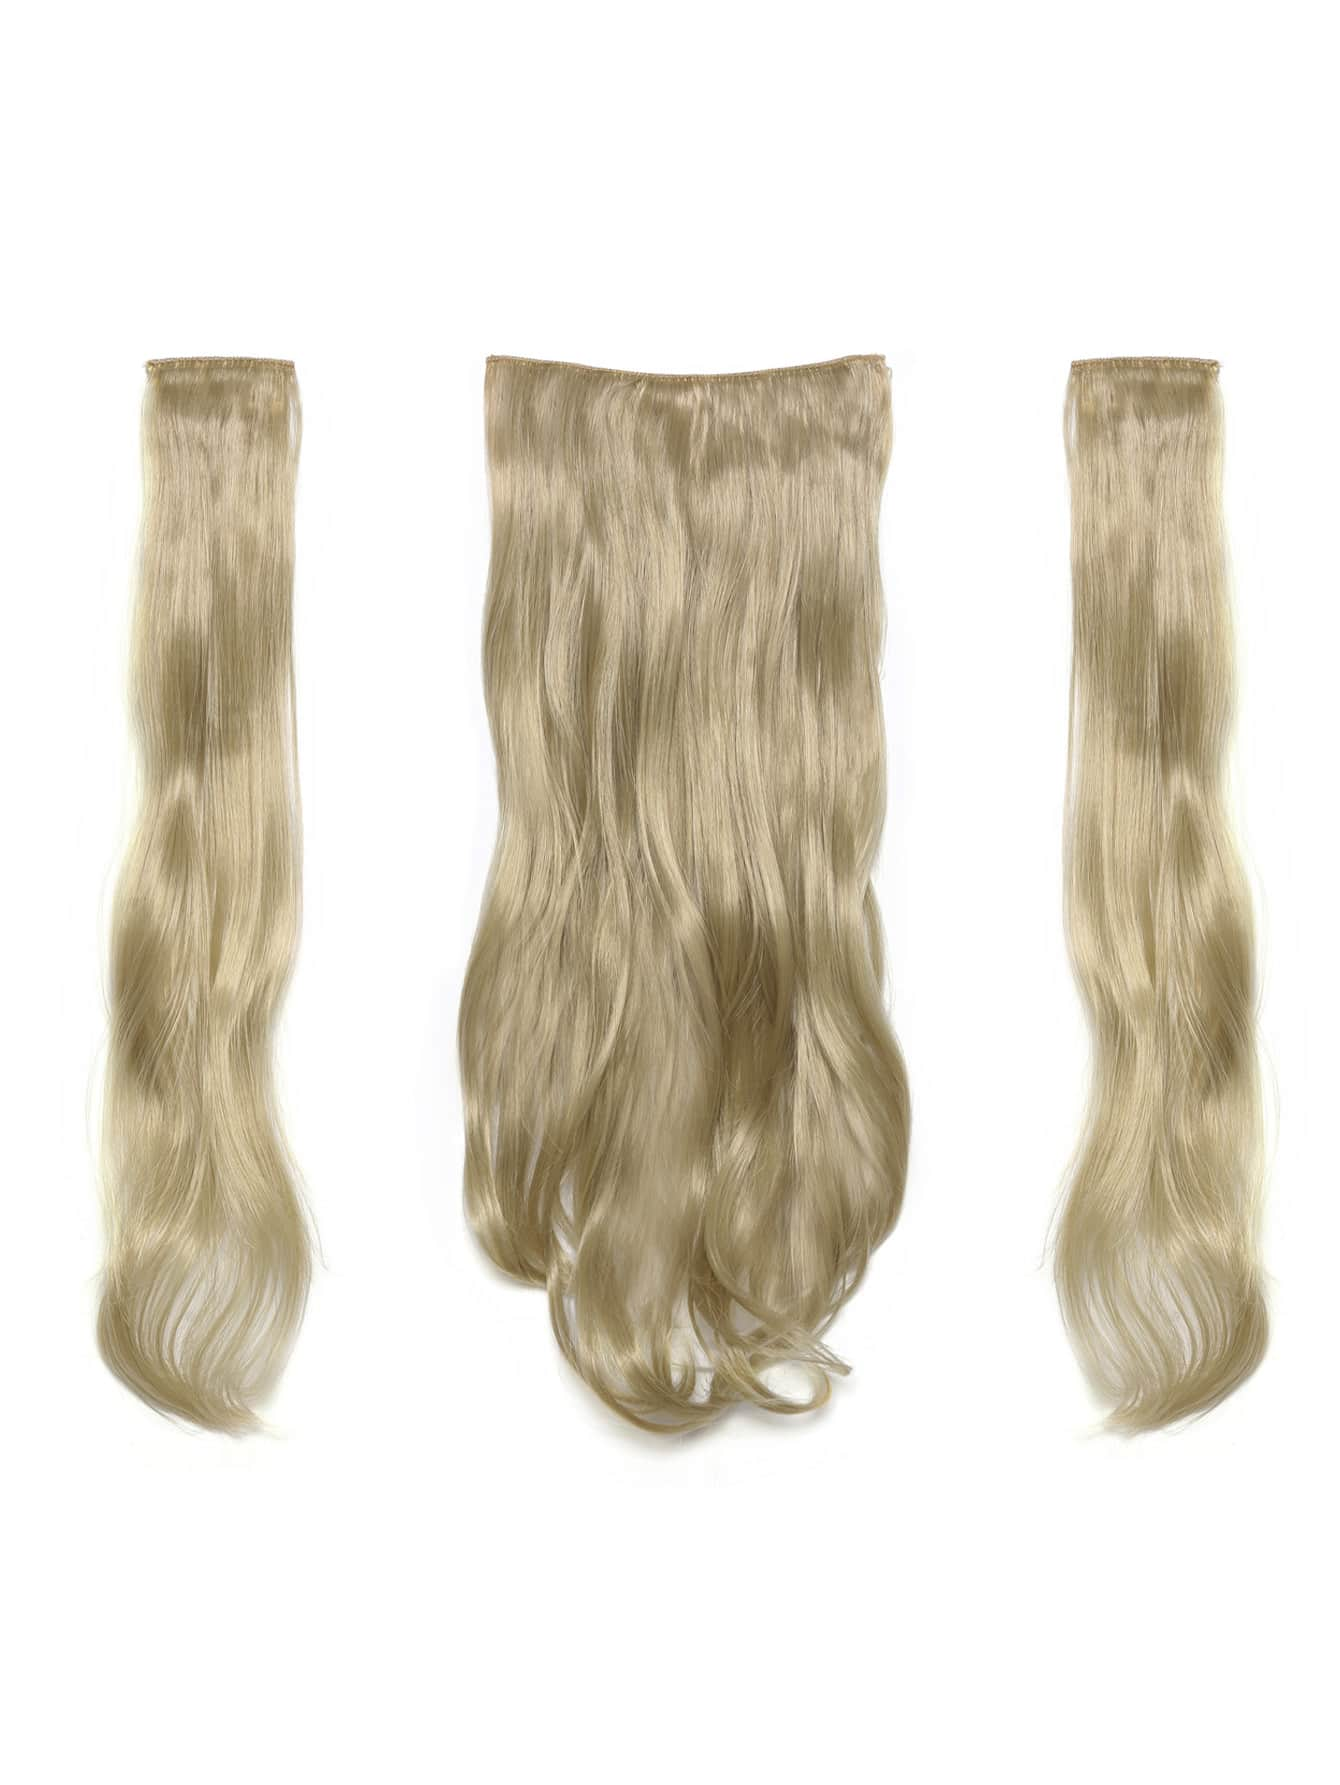 Light Golden Blonde Clip In Soft Wave Hair Extension 3pcs light blonde clip in soft wave hair extension 5pcs